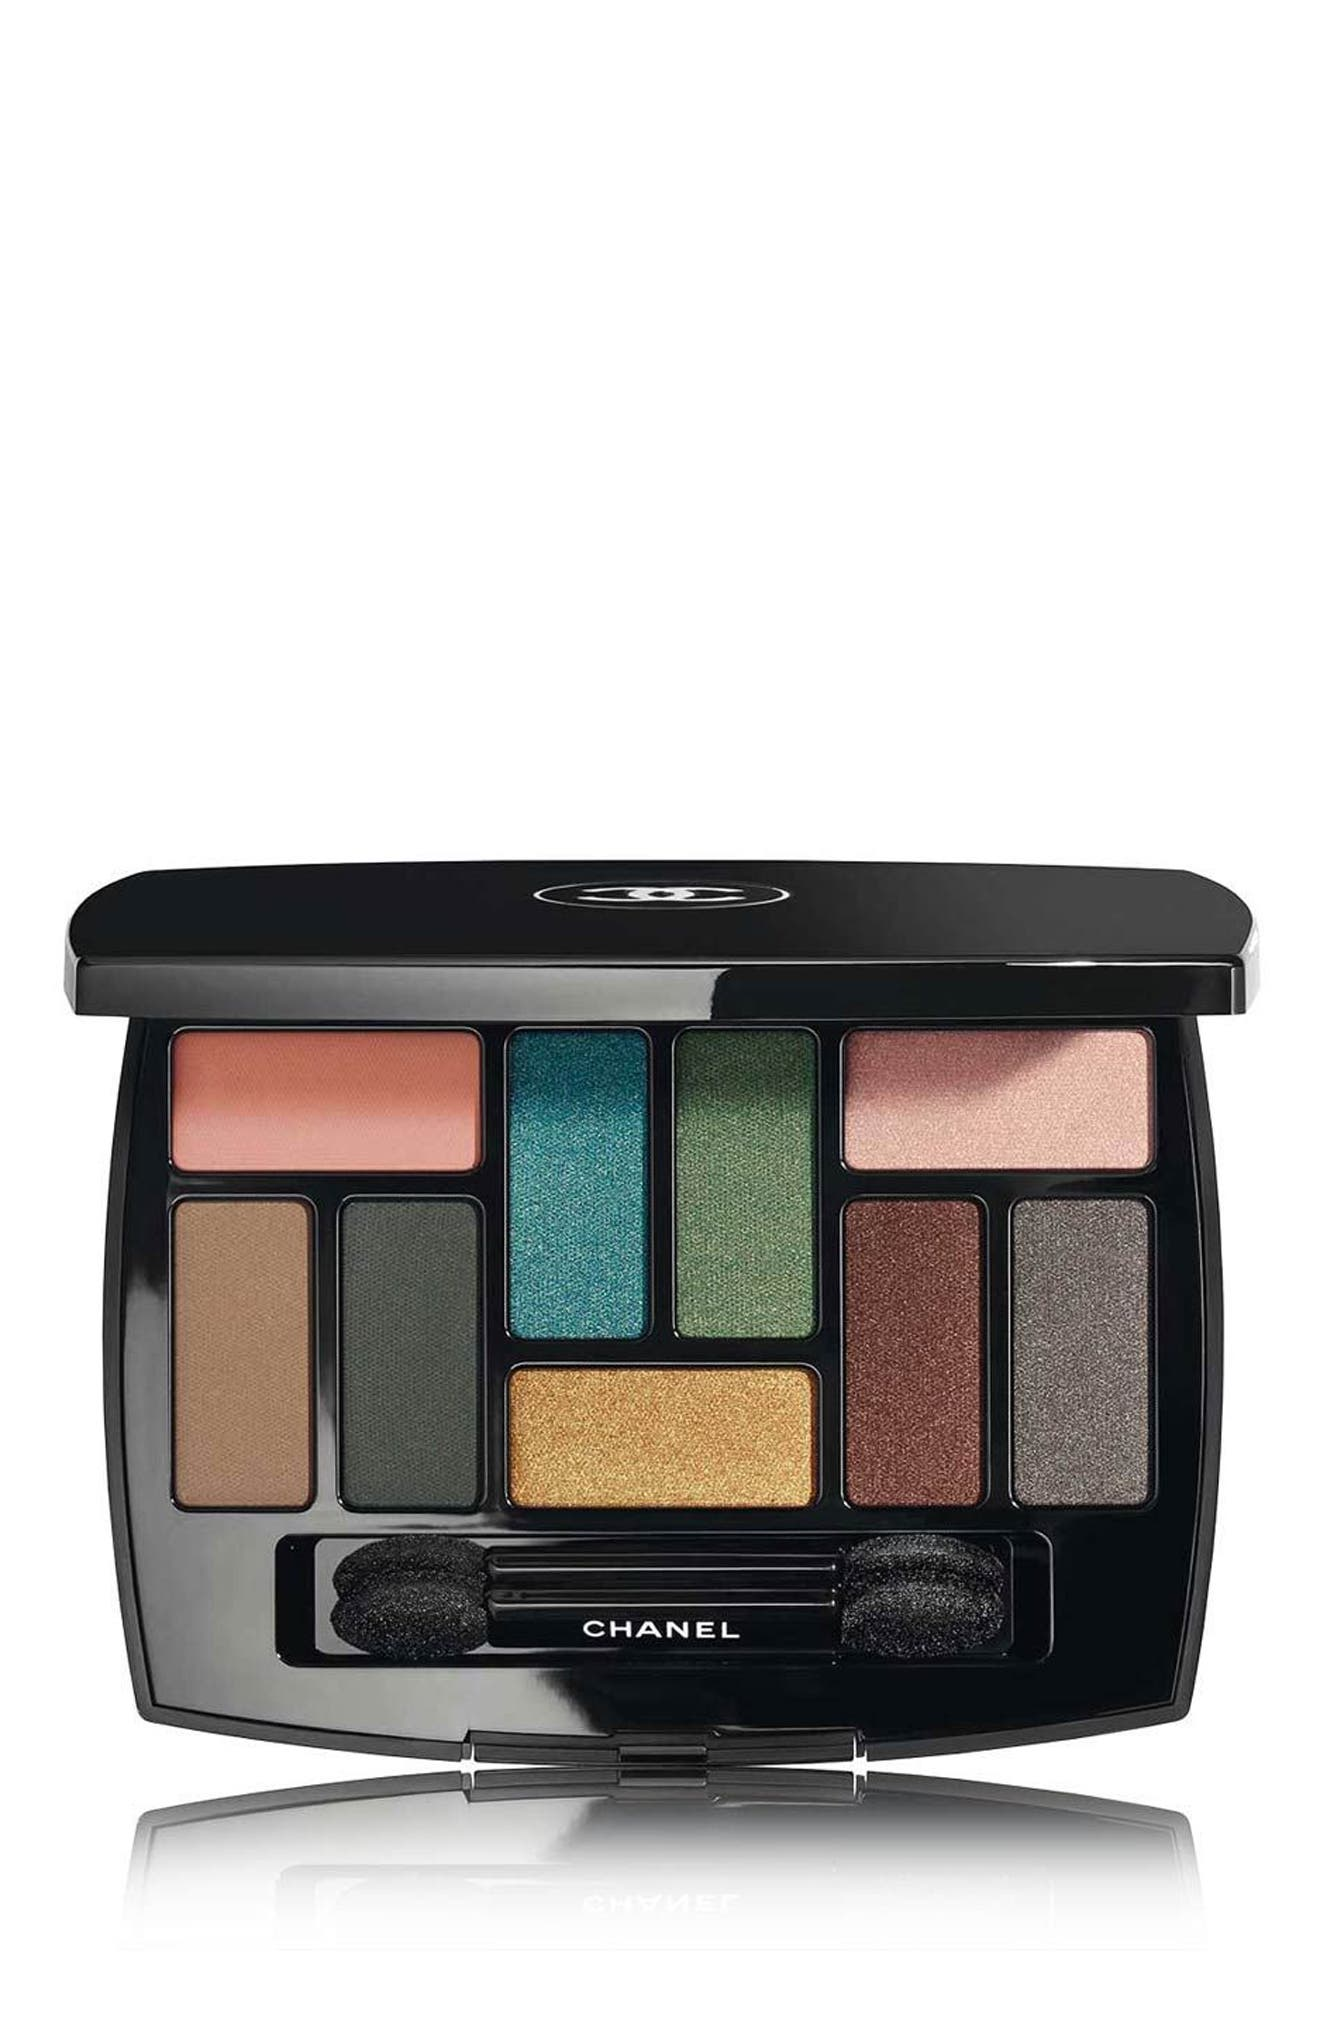 EDITION No. 1 AFFRESCO LES 9 OMBRES<br />Multi-Effects Eyeshadow Palette,                         Main,                         color, No Color